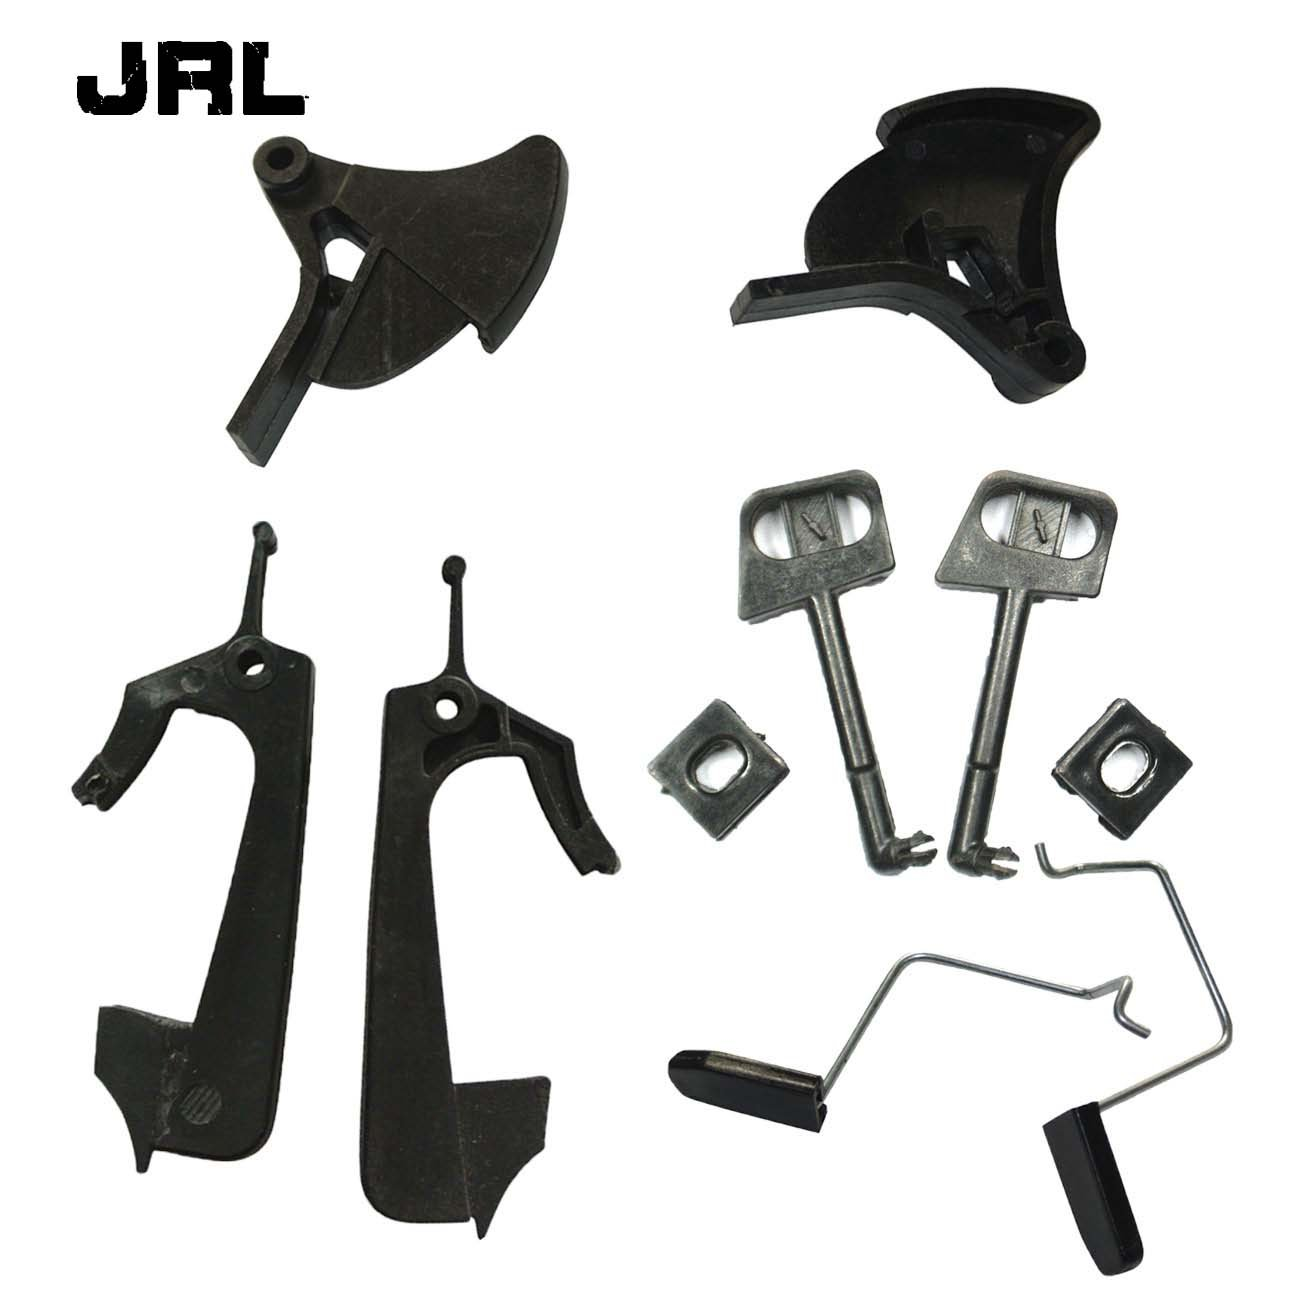 JRL Choke Gashebel Rod Hebel W//Trigger Kit f/ür Chainsaw 36/ 41/ 136/ 137